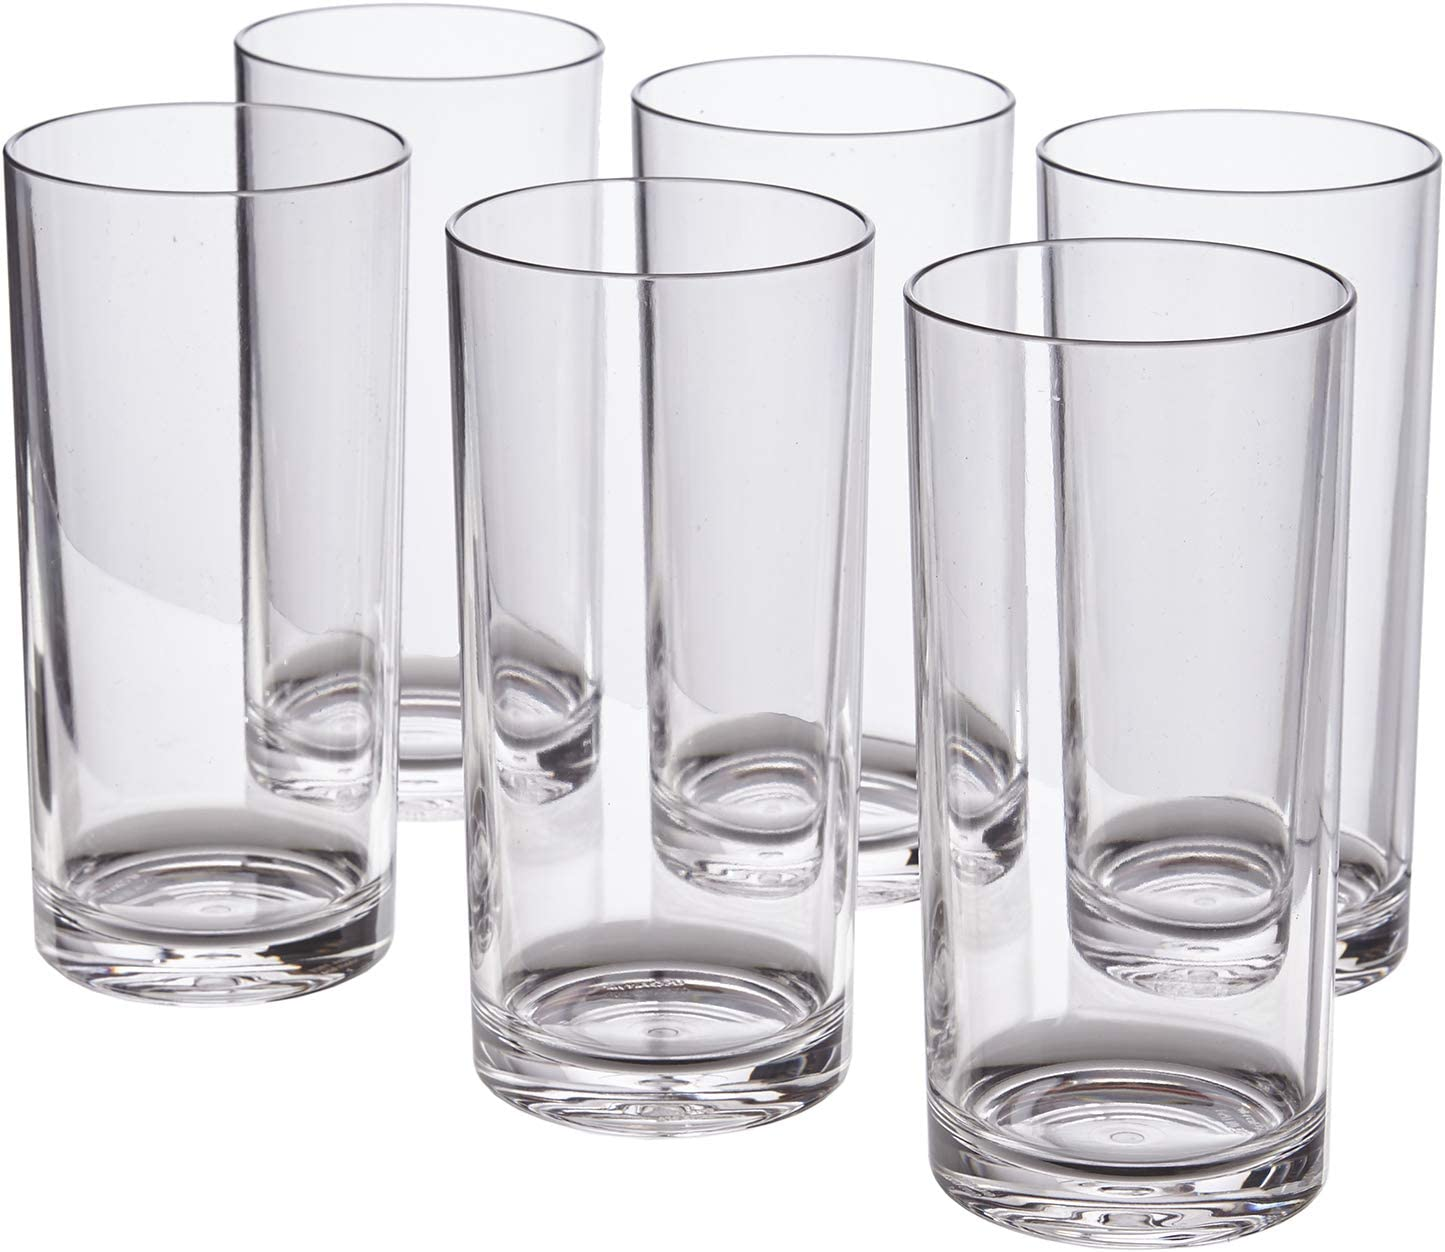 Amazon Com Classic 16 Ounce Premium Quality Plastic Water Tumbler Clear Set Of 6 Mixed Drinkware Sets